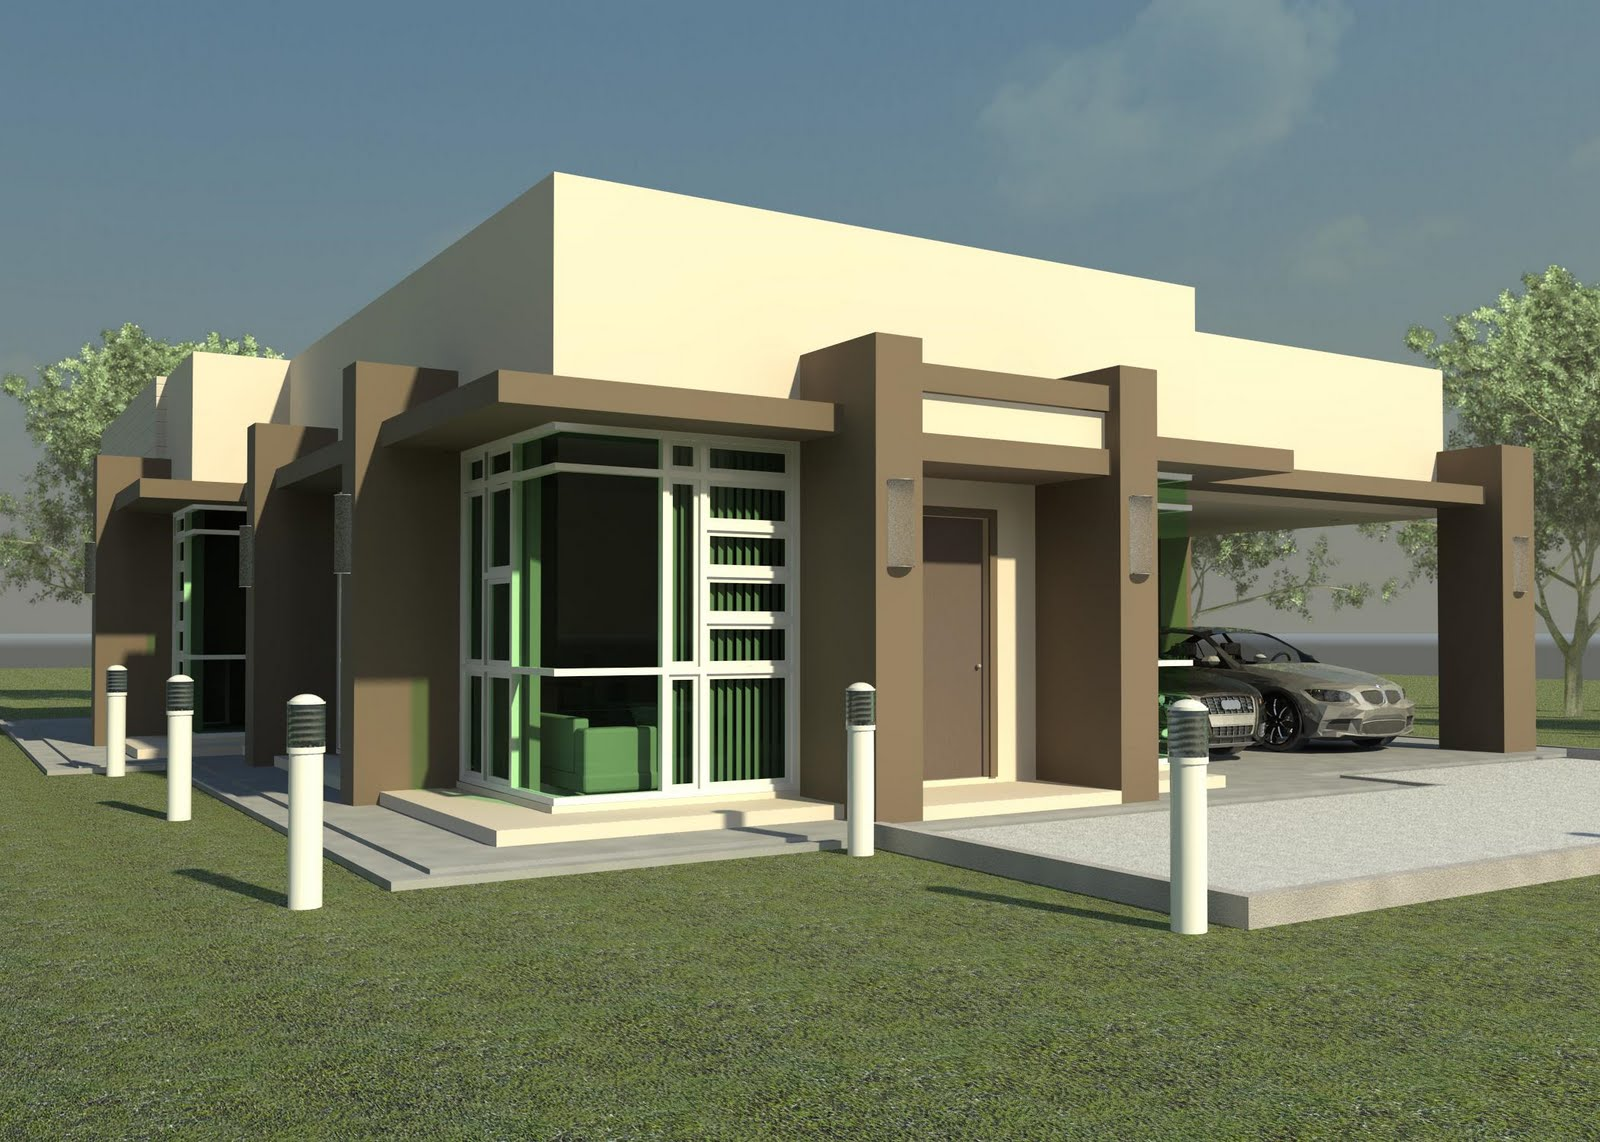 New home designs latest modern small homes designs exterior for Small house plans modern design